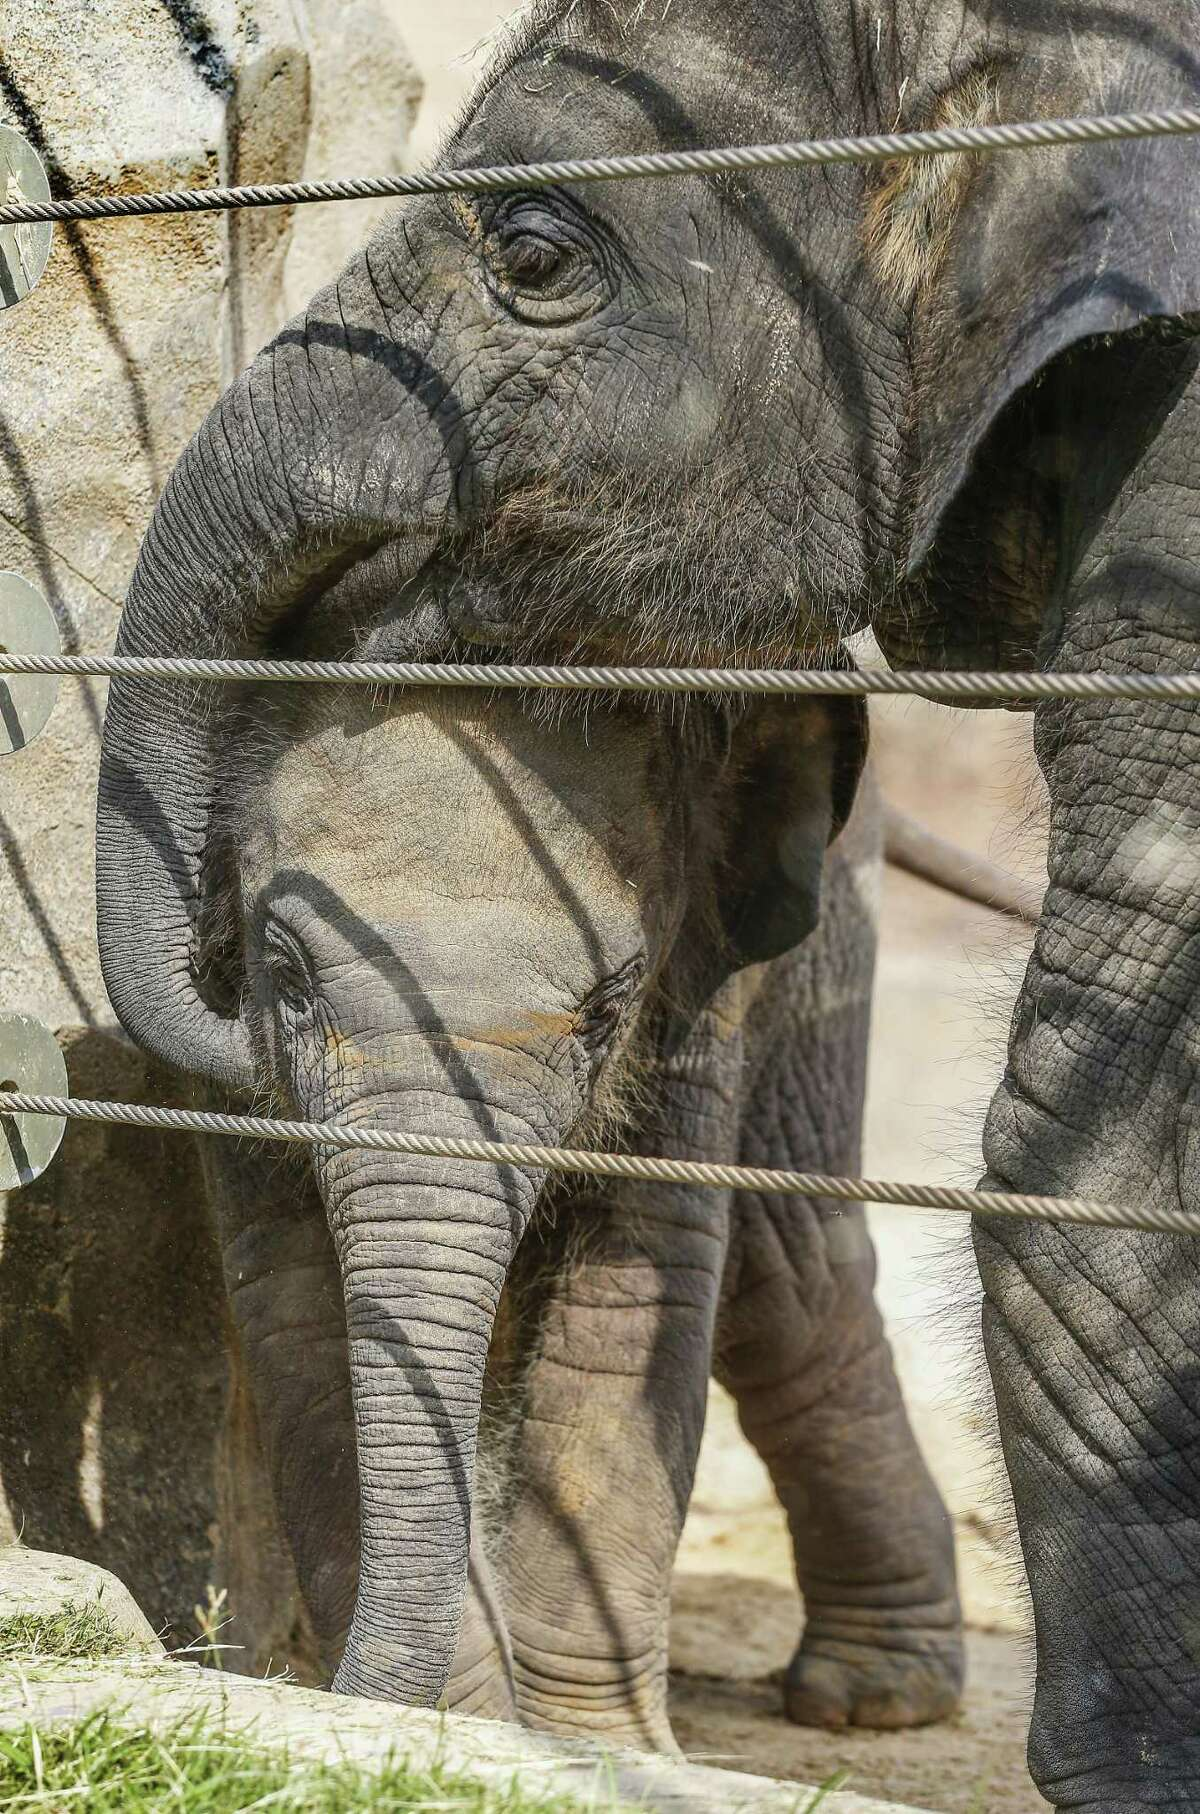 Joy (right) plays with Tilly, born June 17th, the newest addition to the elephants at the Houston Zoo Monday, July 30, 2018, in Houston. ( Steve Gonzales / Houston Chronicle )